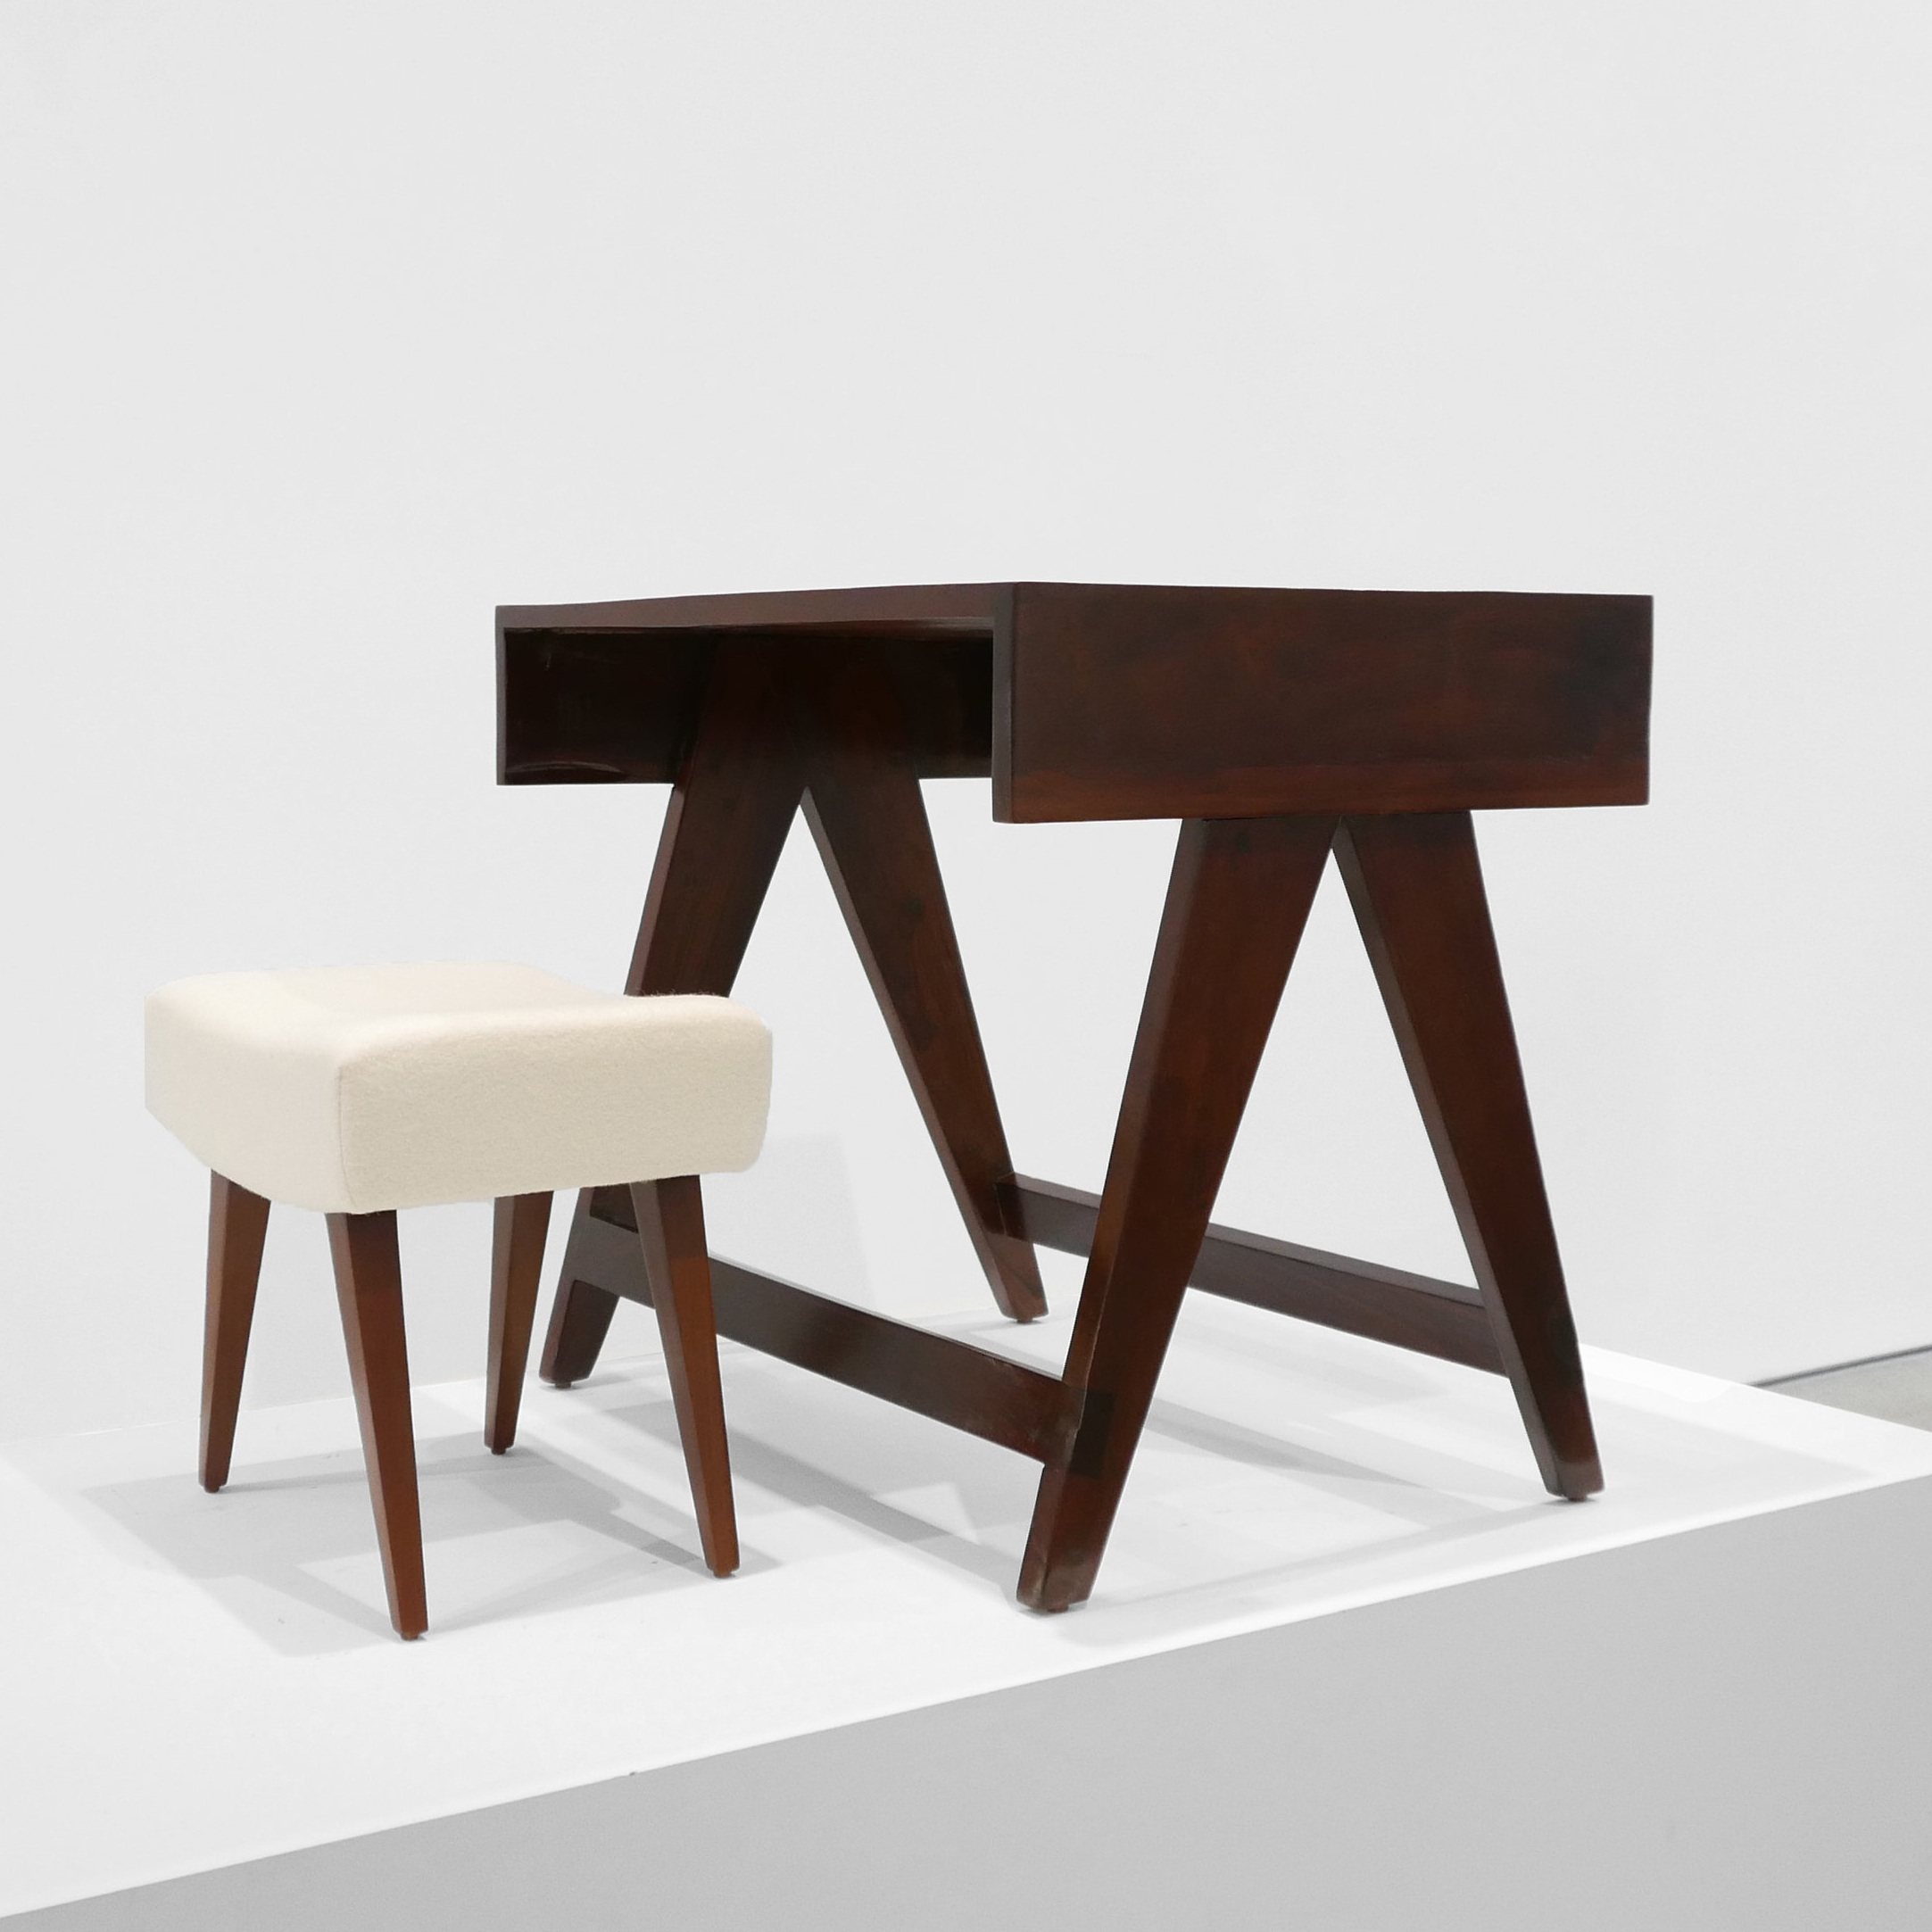 pierre jeanneret desk & stool from chandigarh sold